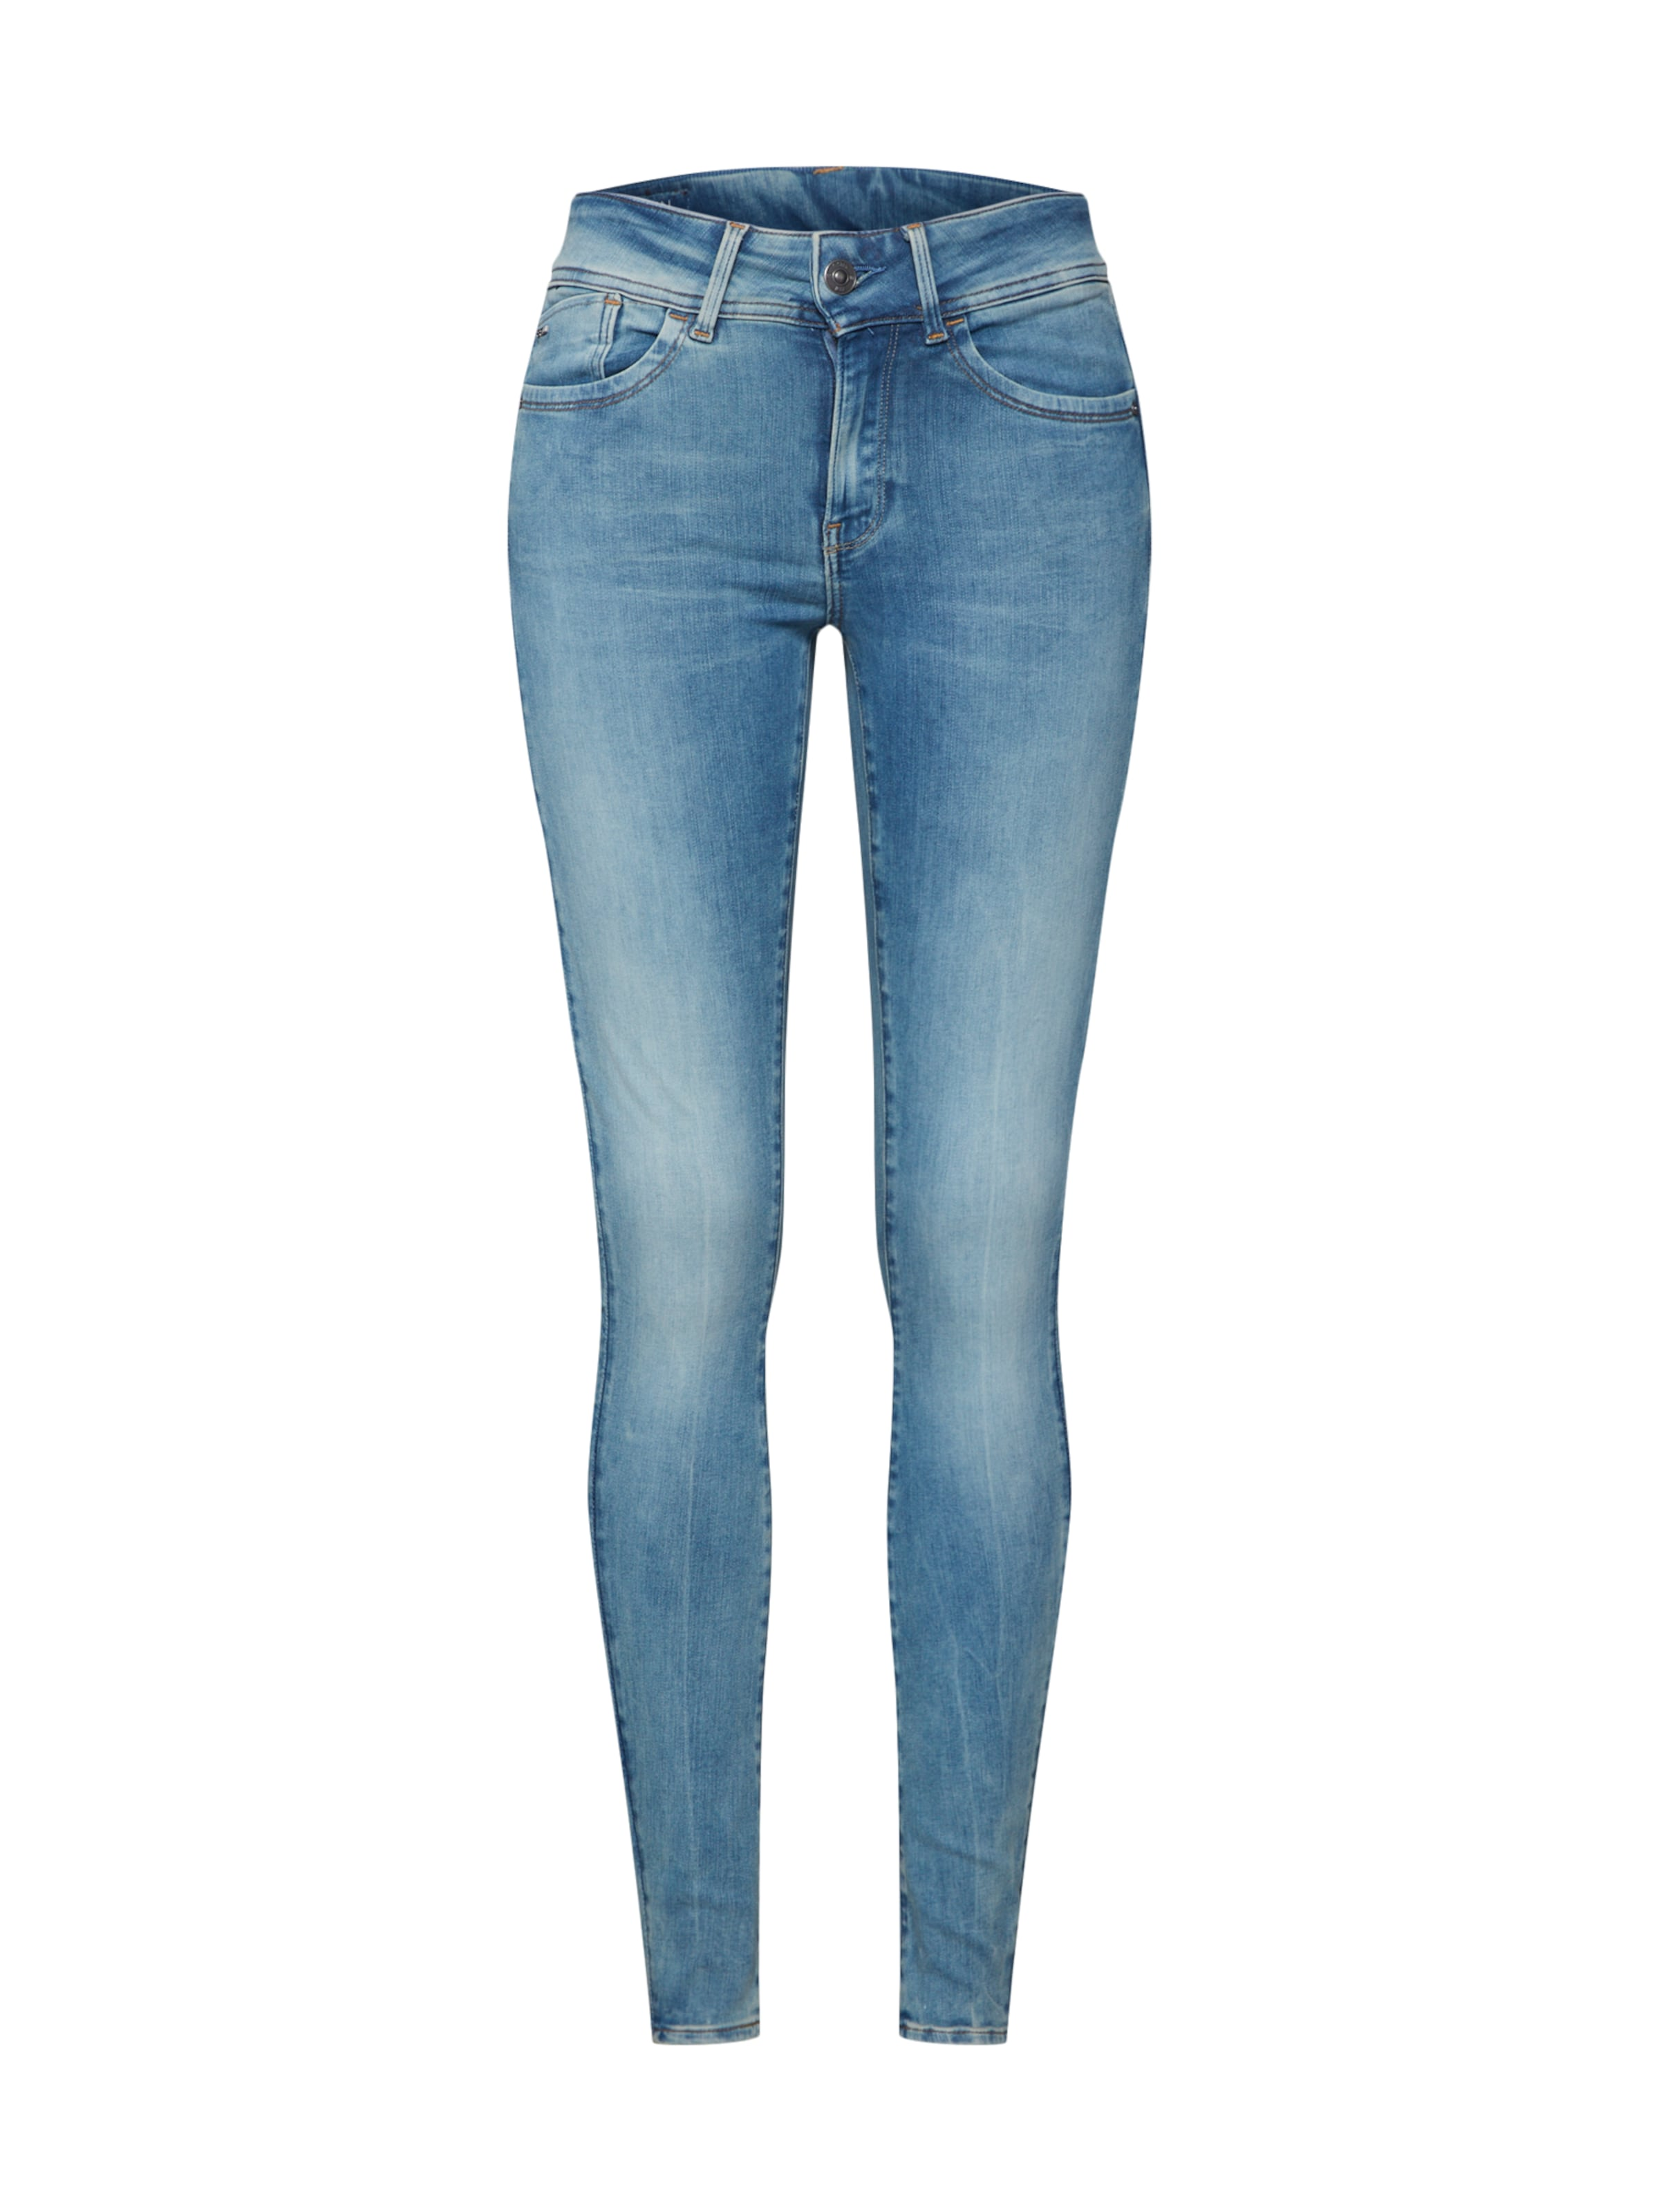 G In Jeans star Denim 'lynn' Blue Raw l1uK5Tc3FJ